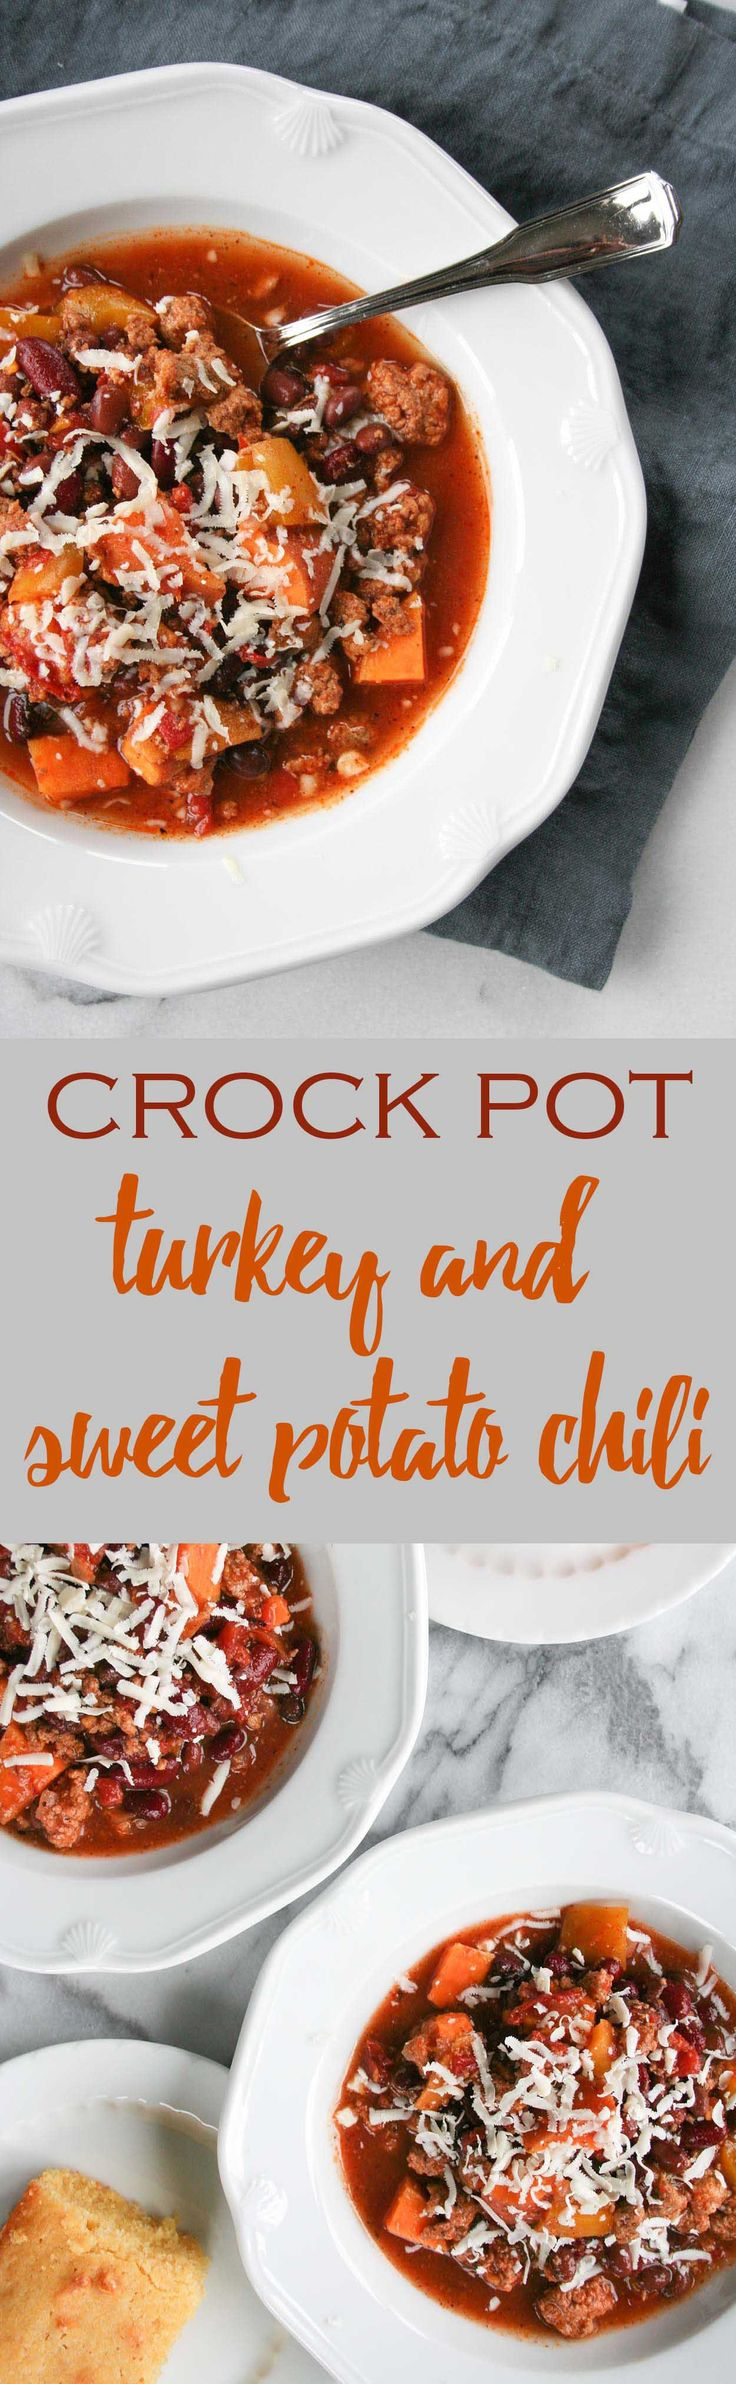 The easiest and tastiest CROCK POT turkey and sweet potato chili. This is perfect for fall and football season! | hungrybynature.com